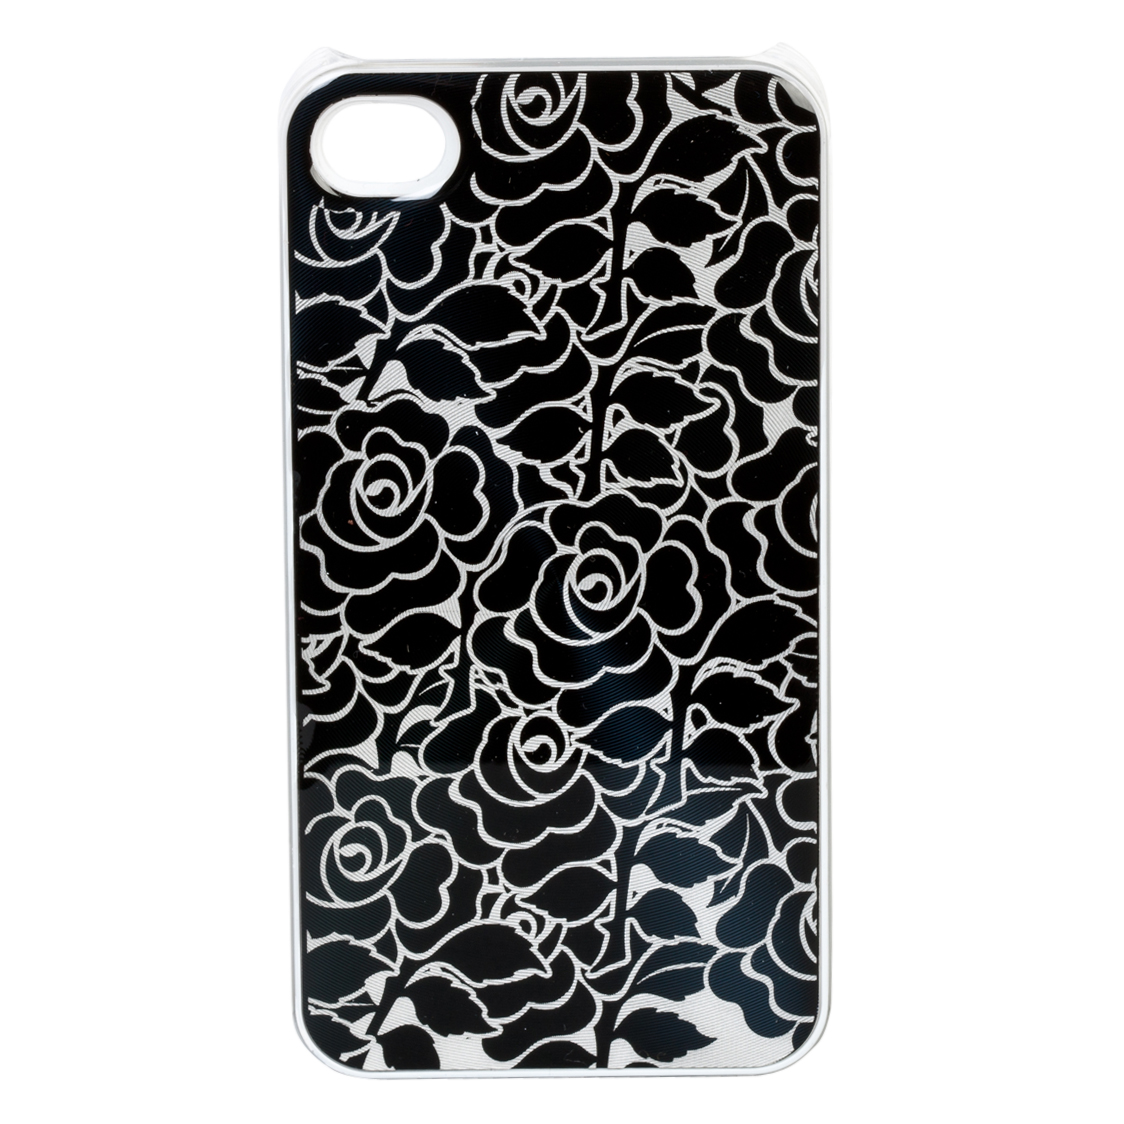 England Black Rose iPhone 4 Cover